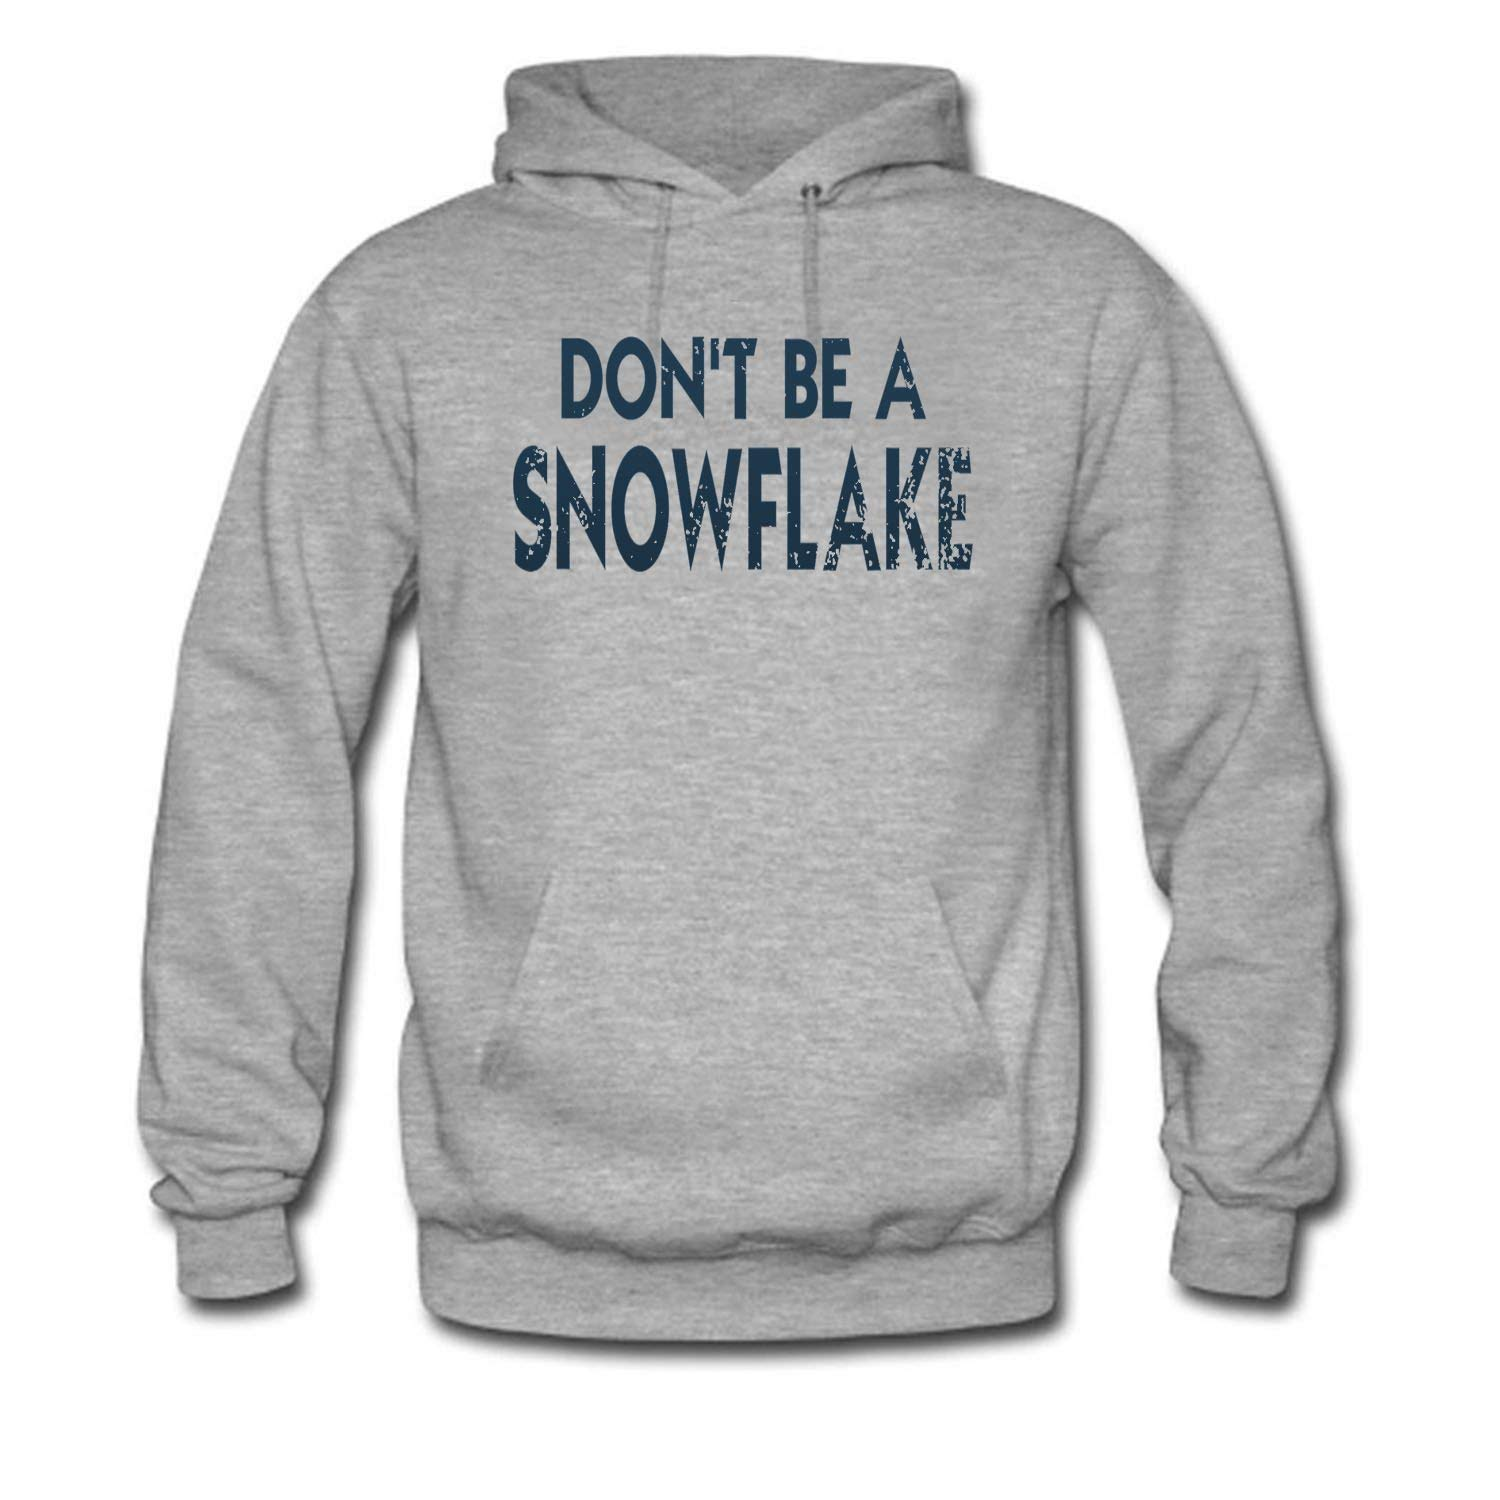 8cfc03ce8 Grey Bbhappiness Mens Don't Be a Snowflake Hoodies Hoodies Hoodies 26db14